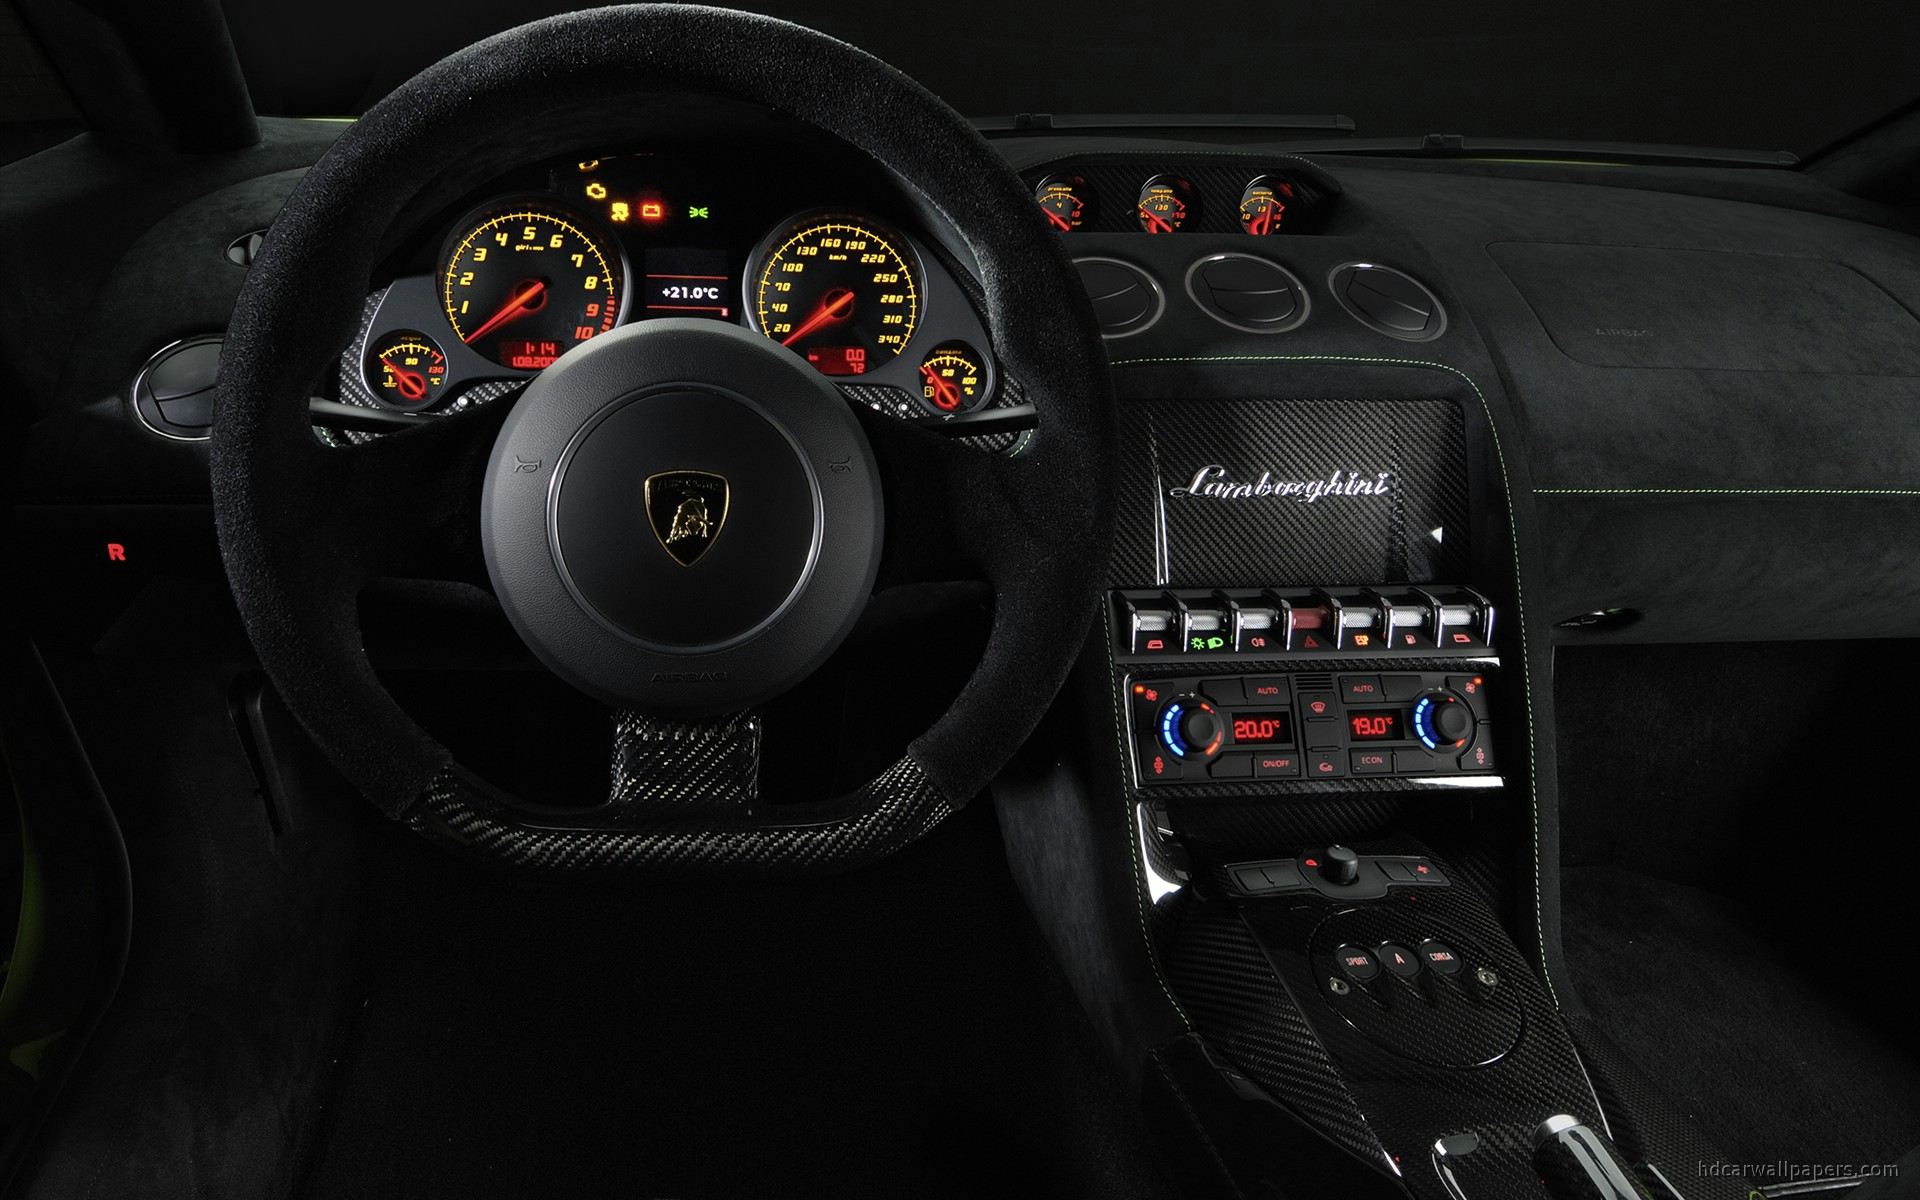 2011 Lamborghini Gallardo Lp 570 4 Superleggera Interior Wallpaper